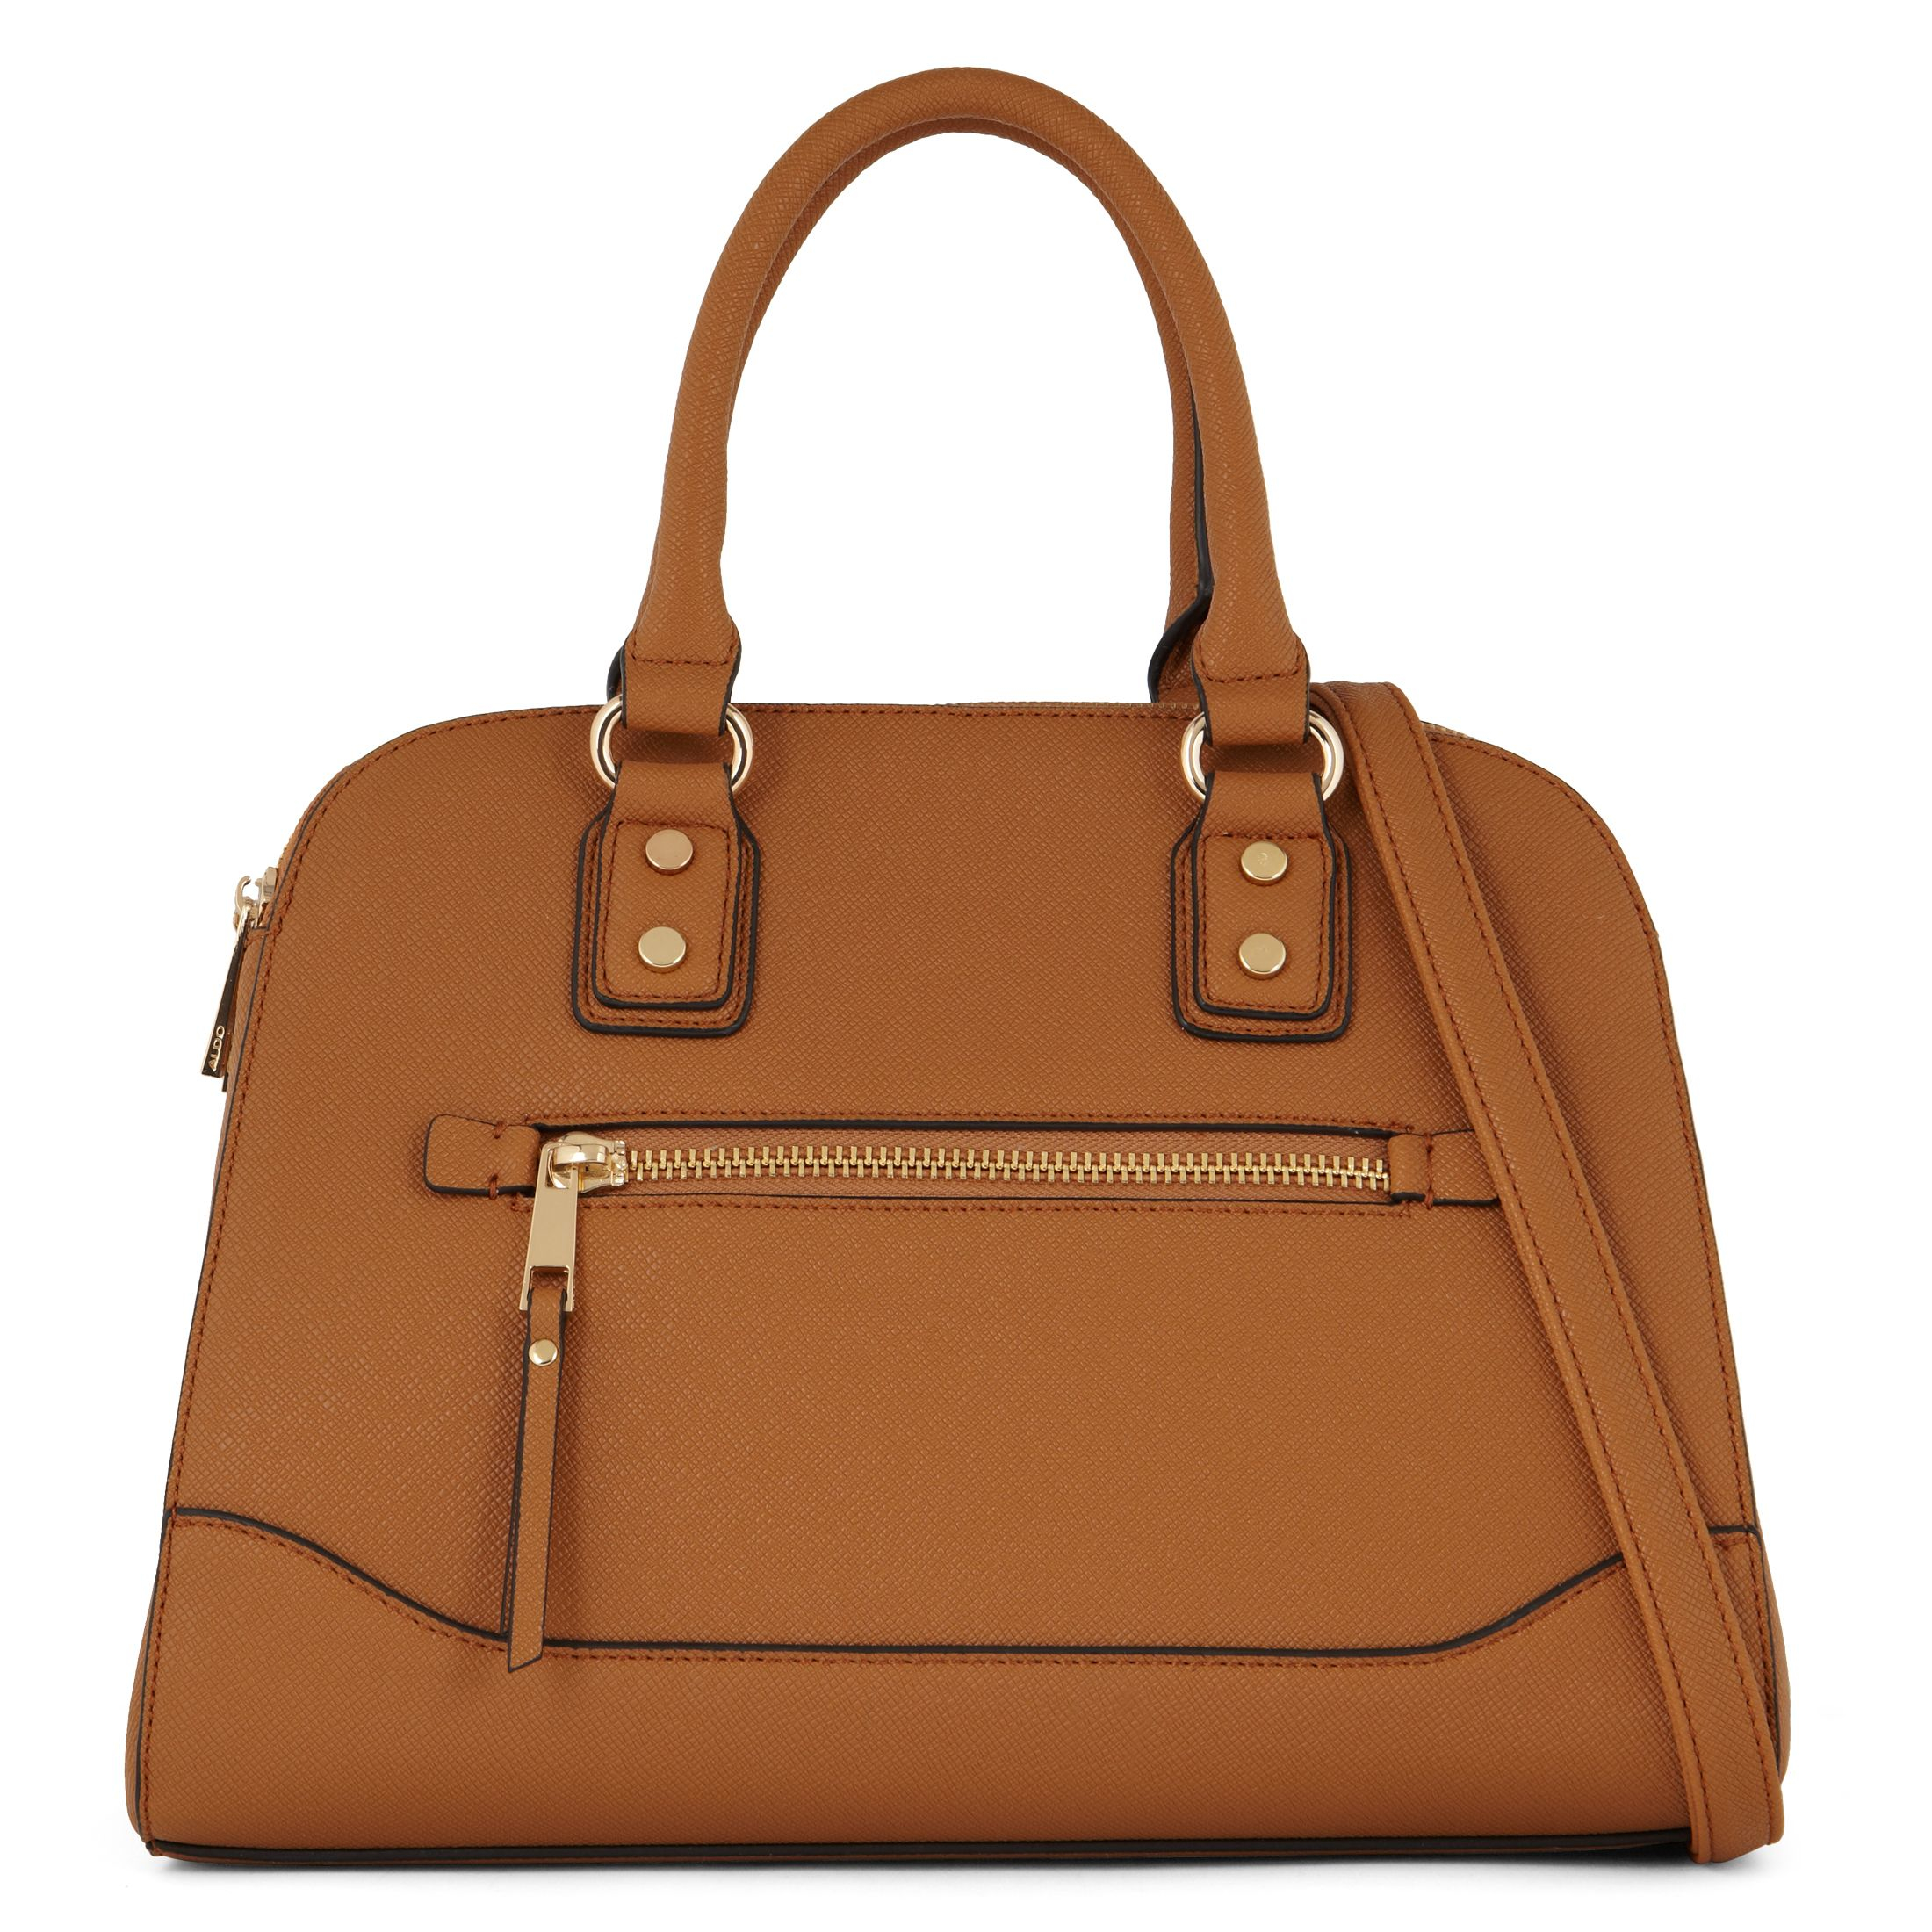 Aldo Anakardo Satchel Bag in Brown | Lyst